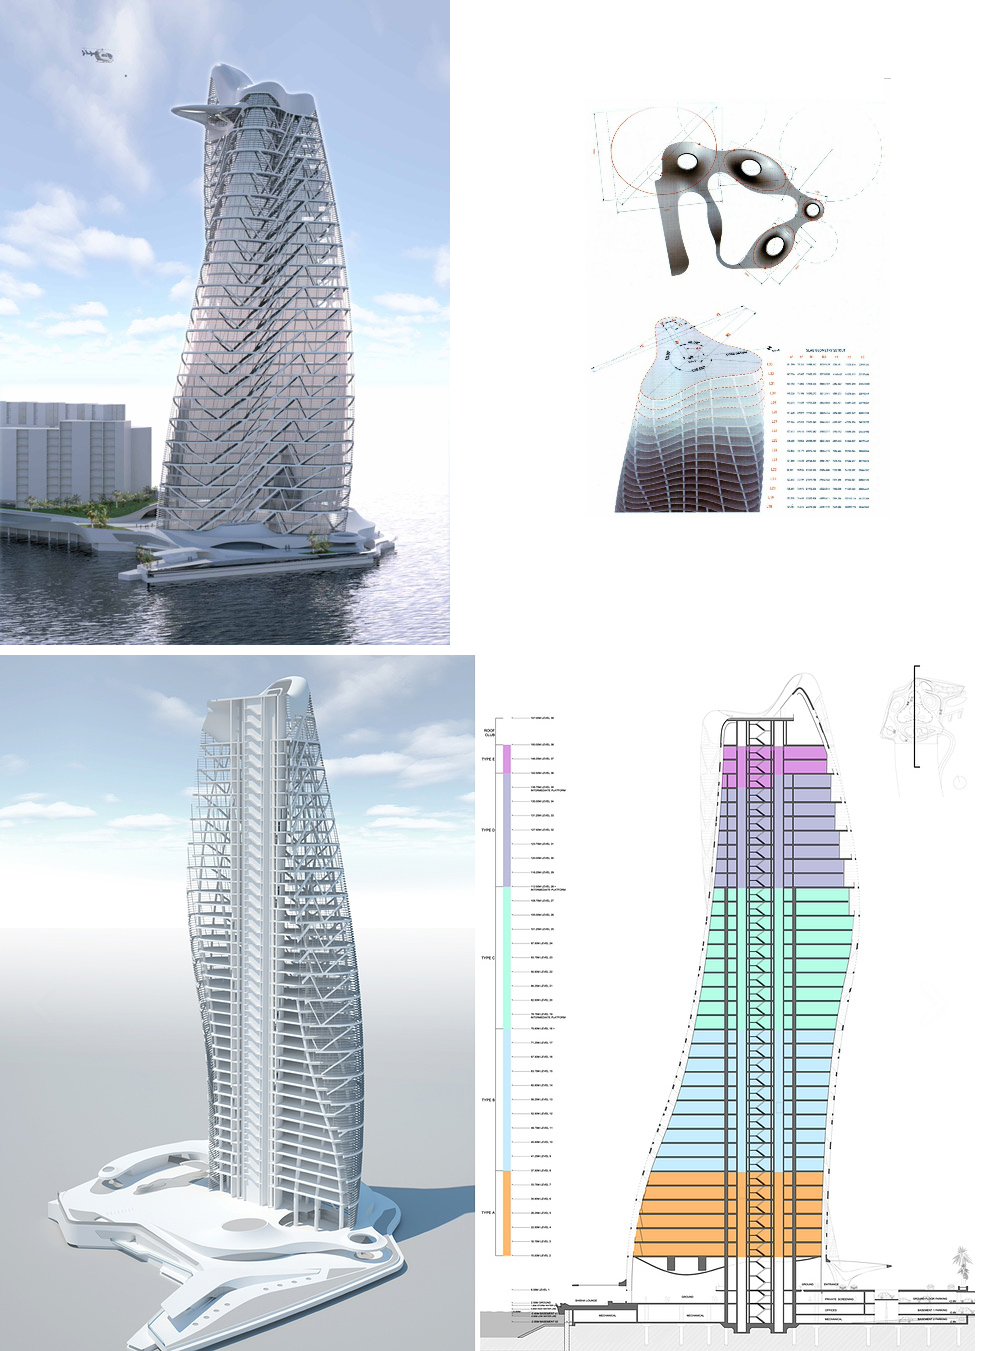 Strata Tower by Asymptote with Gehry Technologies